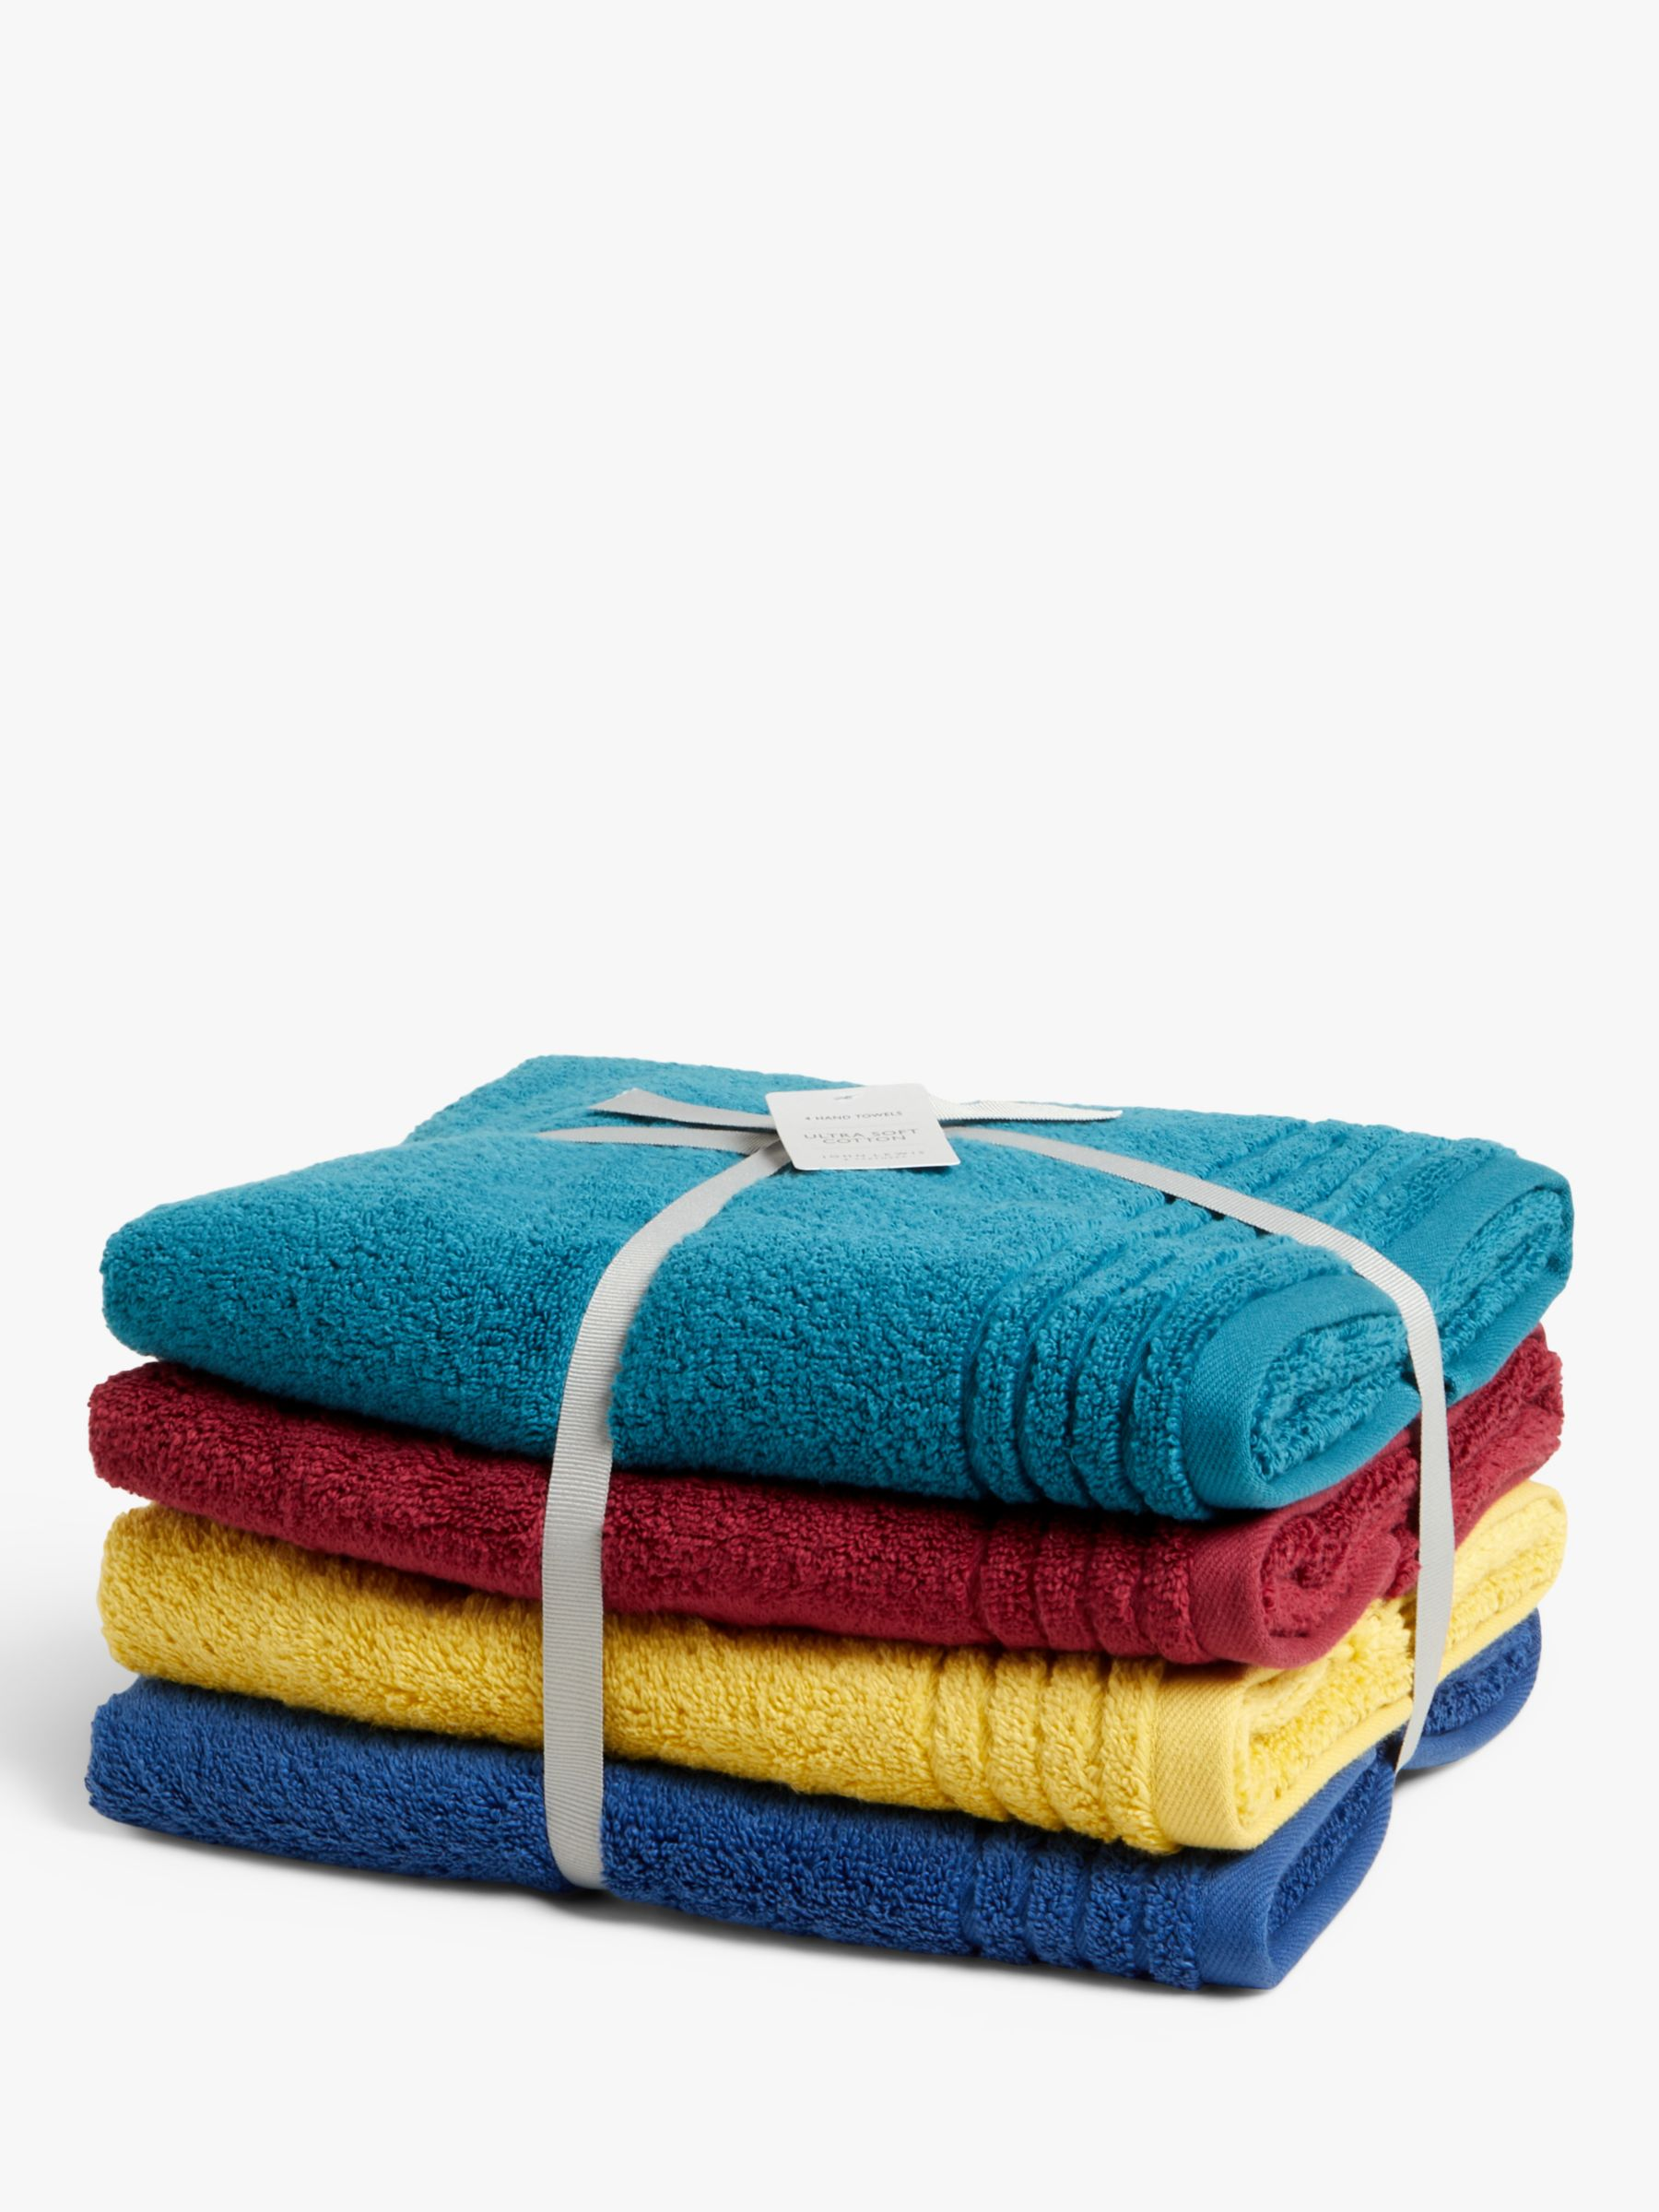 John Lewis & Partners Ultra Soft Hand Towels, Pack of 4